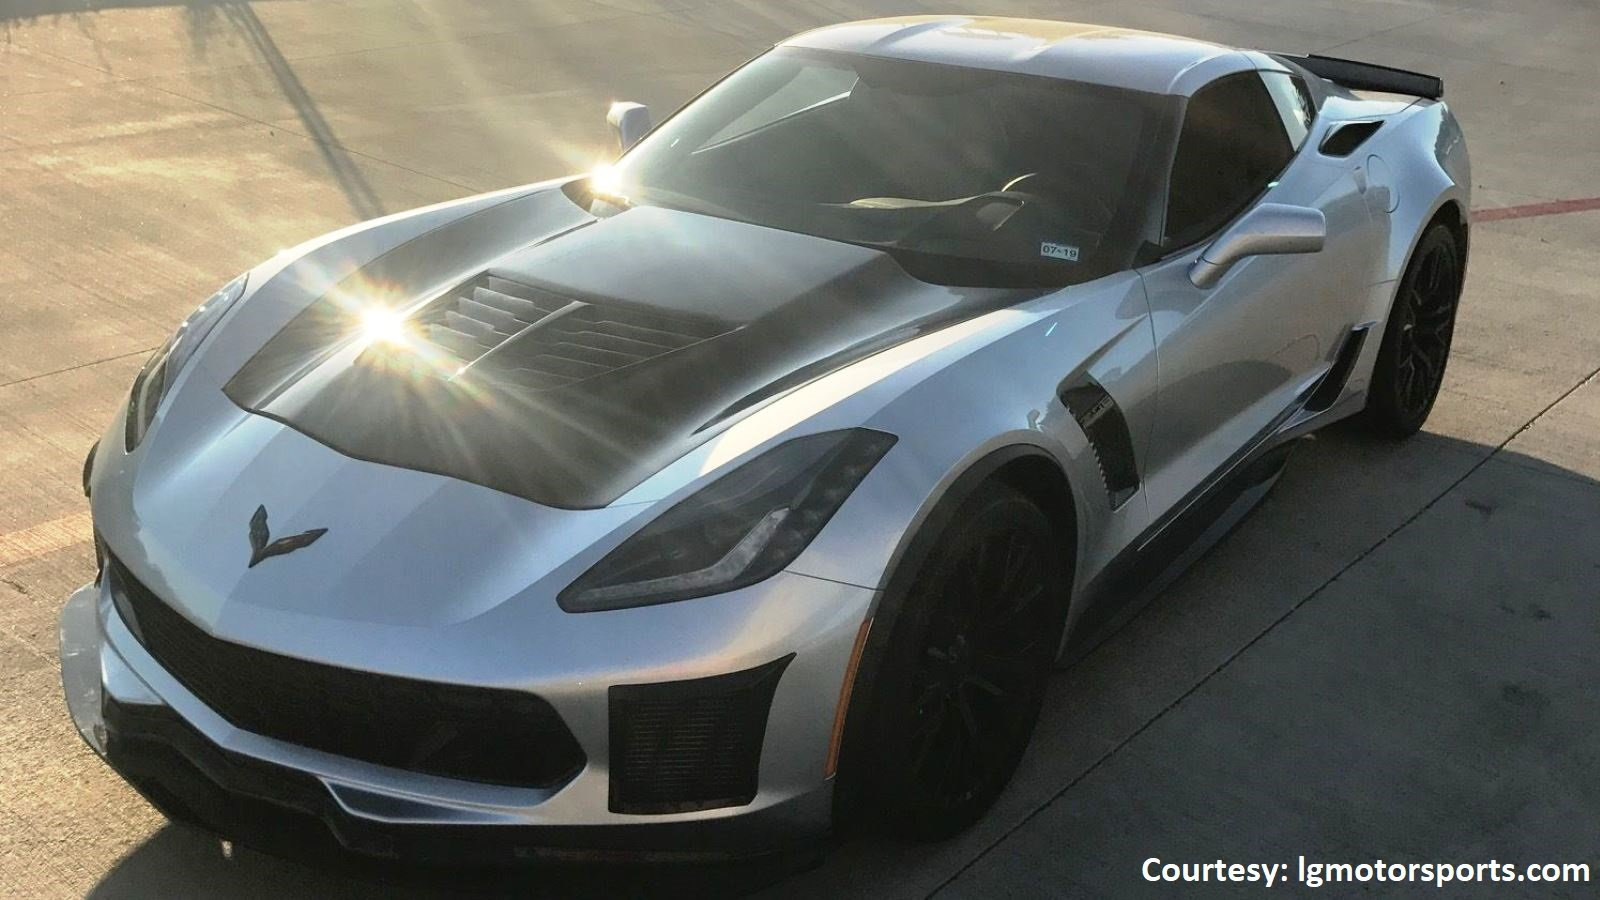 4th Lawsuit Filed Over Cooling Issues with C7 Z06